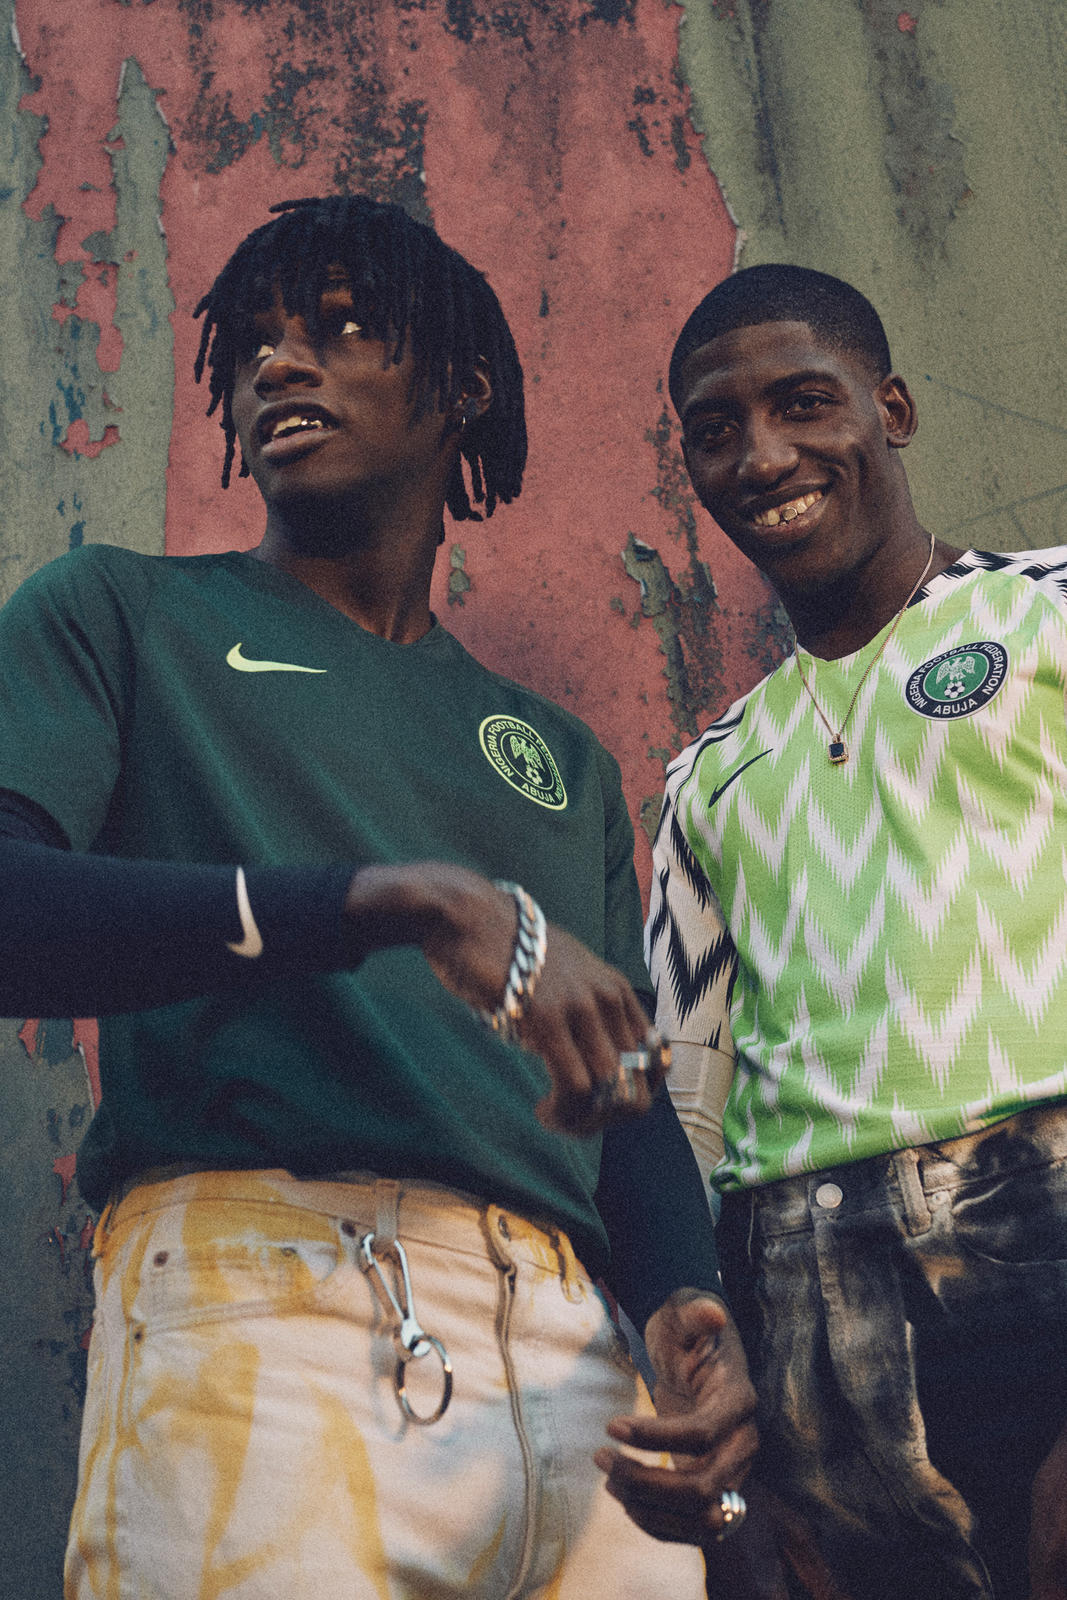 Nike-News-Football-Soccer-Nigeria-National-Team-Kit-7_native_1600